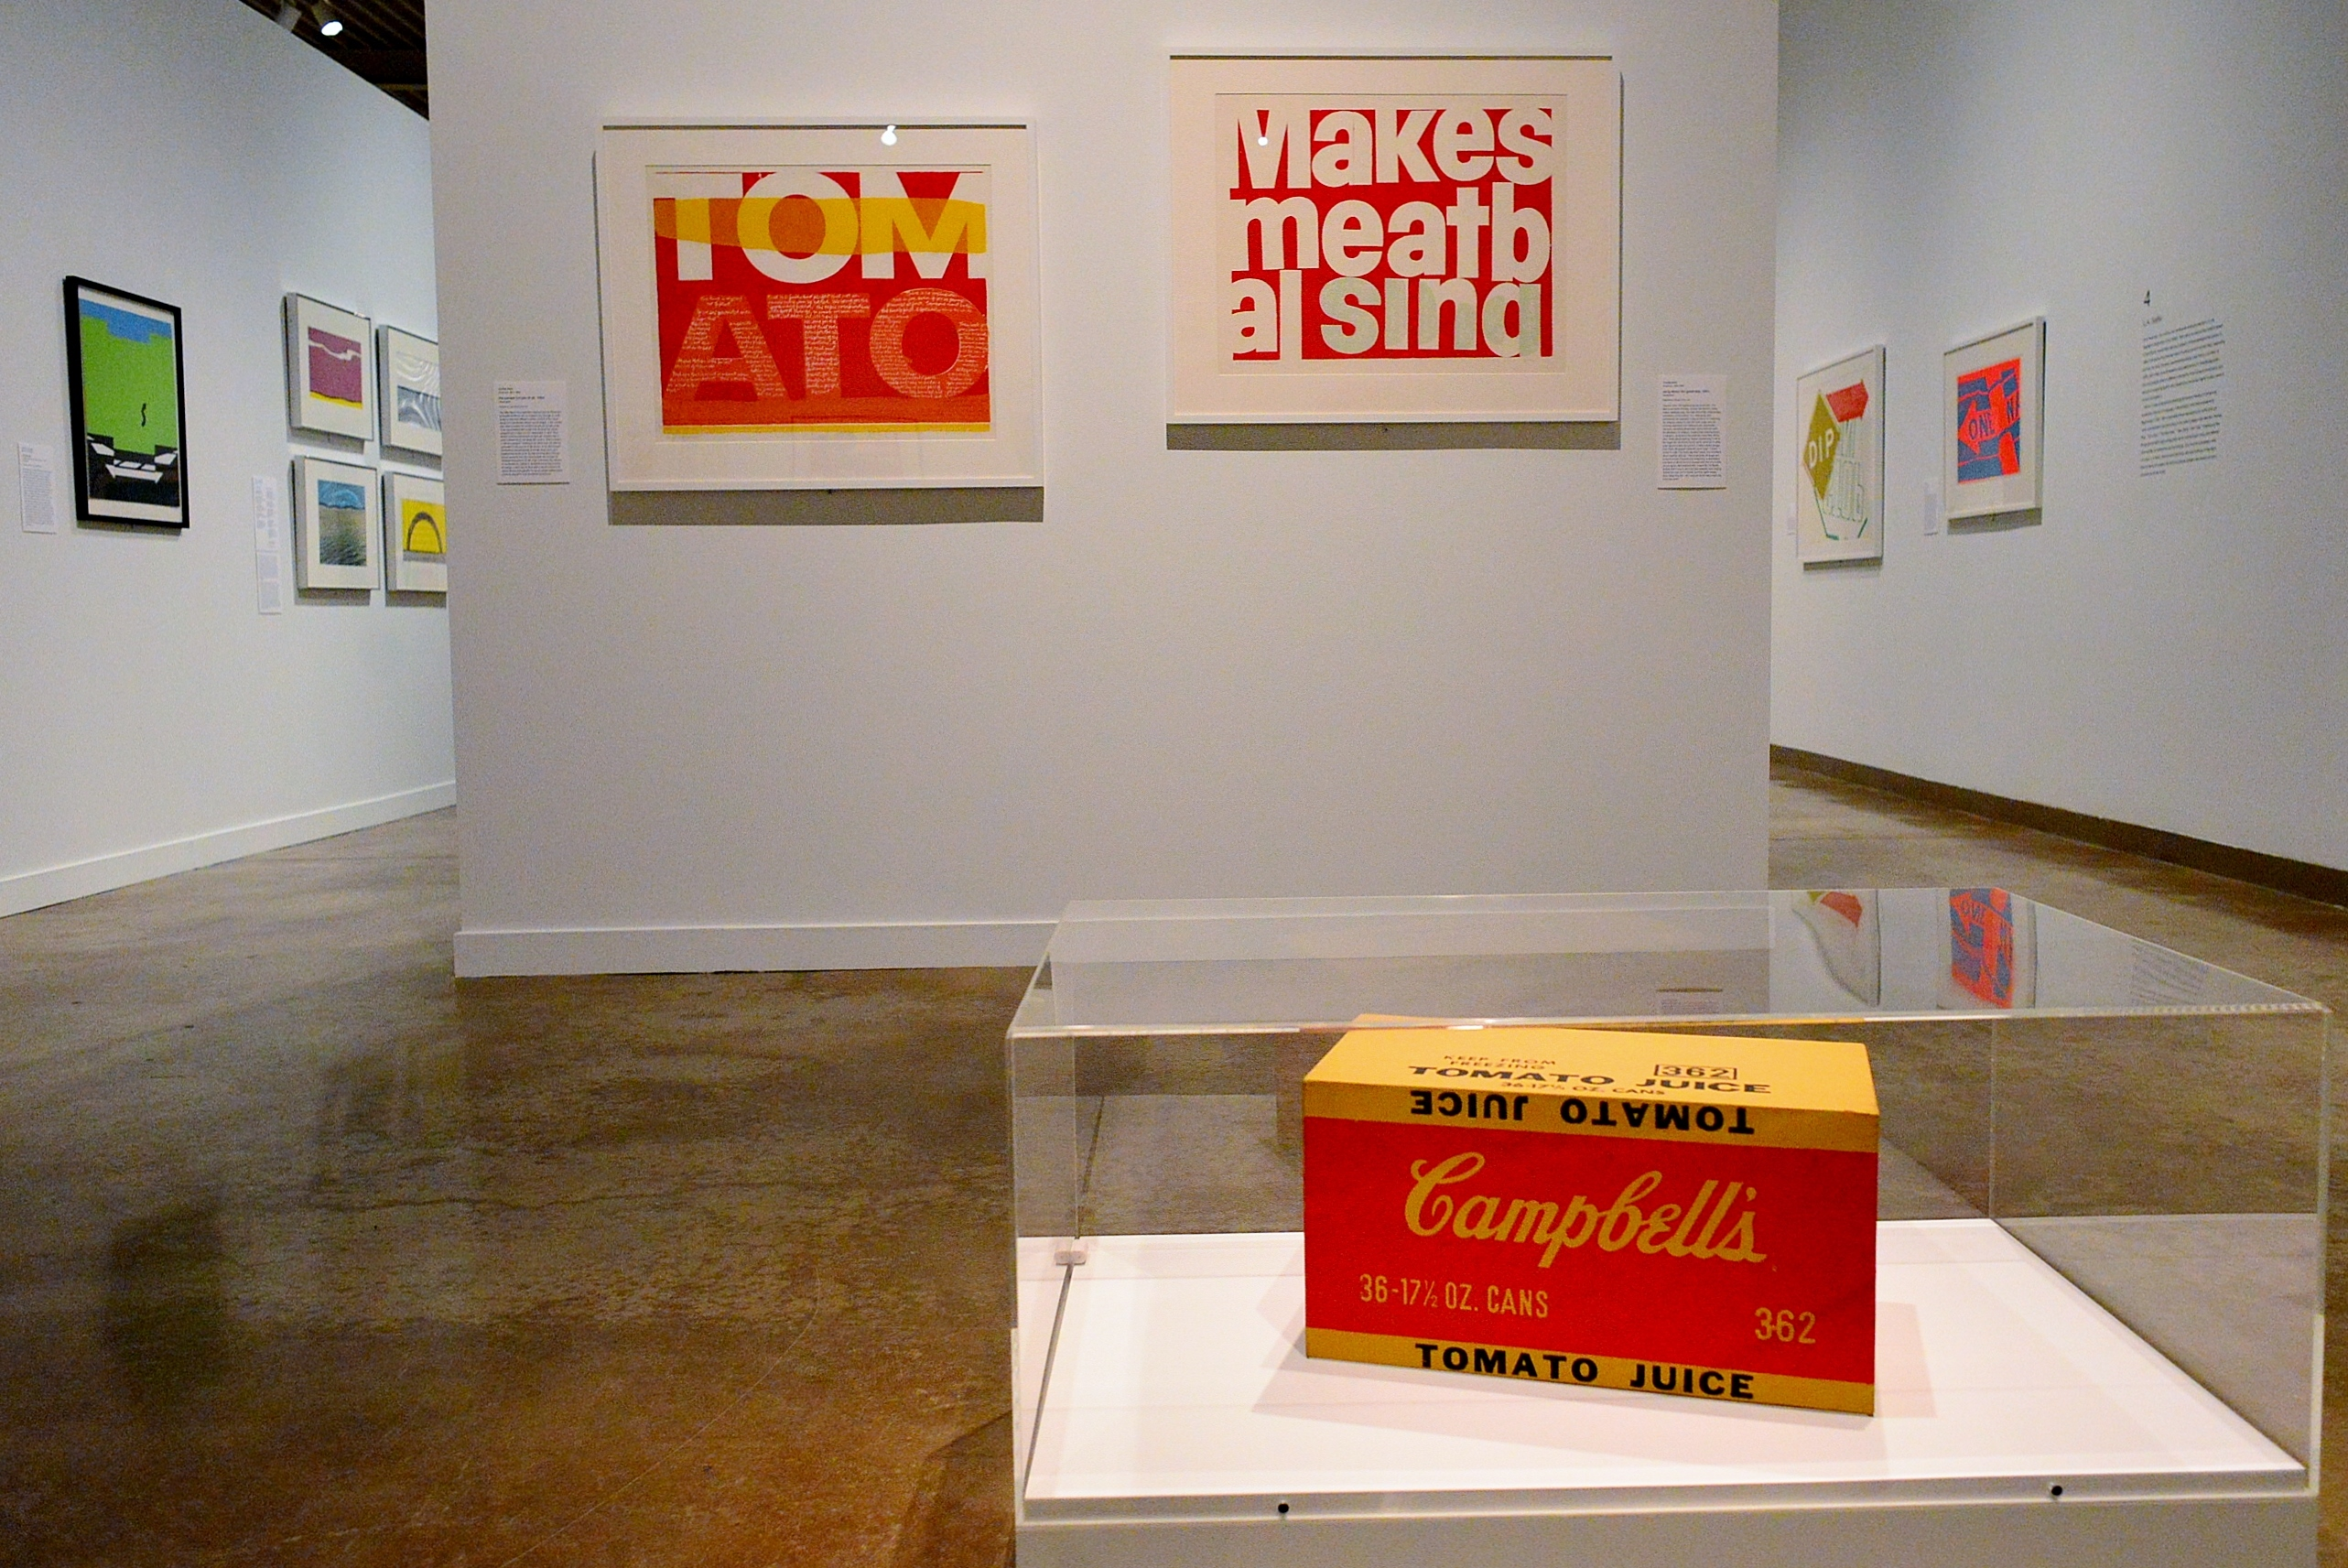 the juiciest tomato of all and song about the greatness (l-r) by Corita Kent. Andy Warhol's Campbell's Tomato Juice Box (foreground)